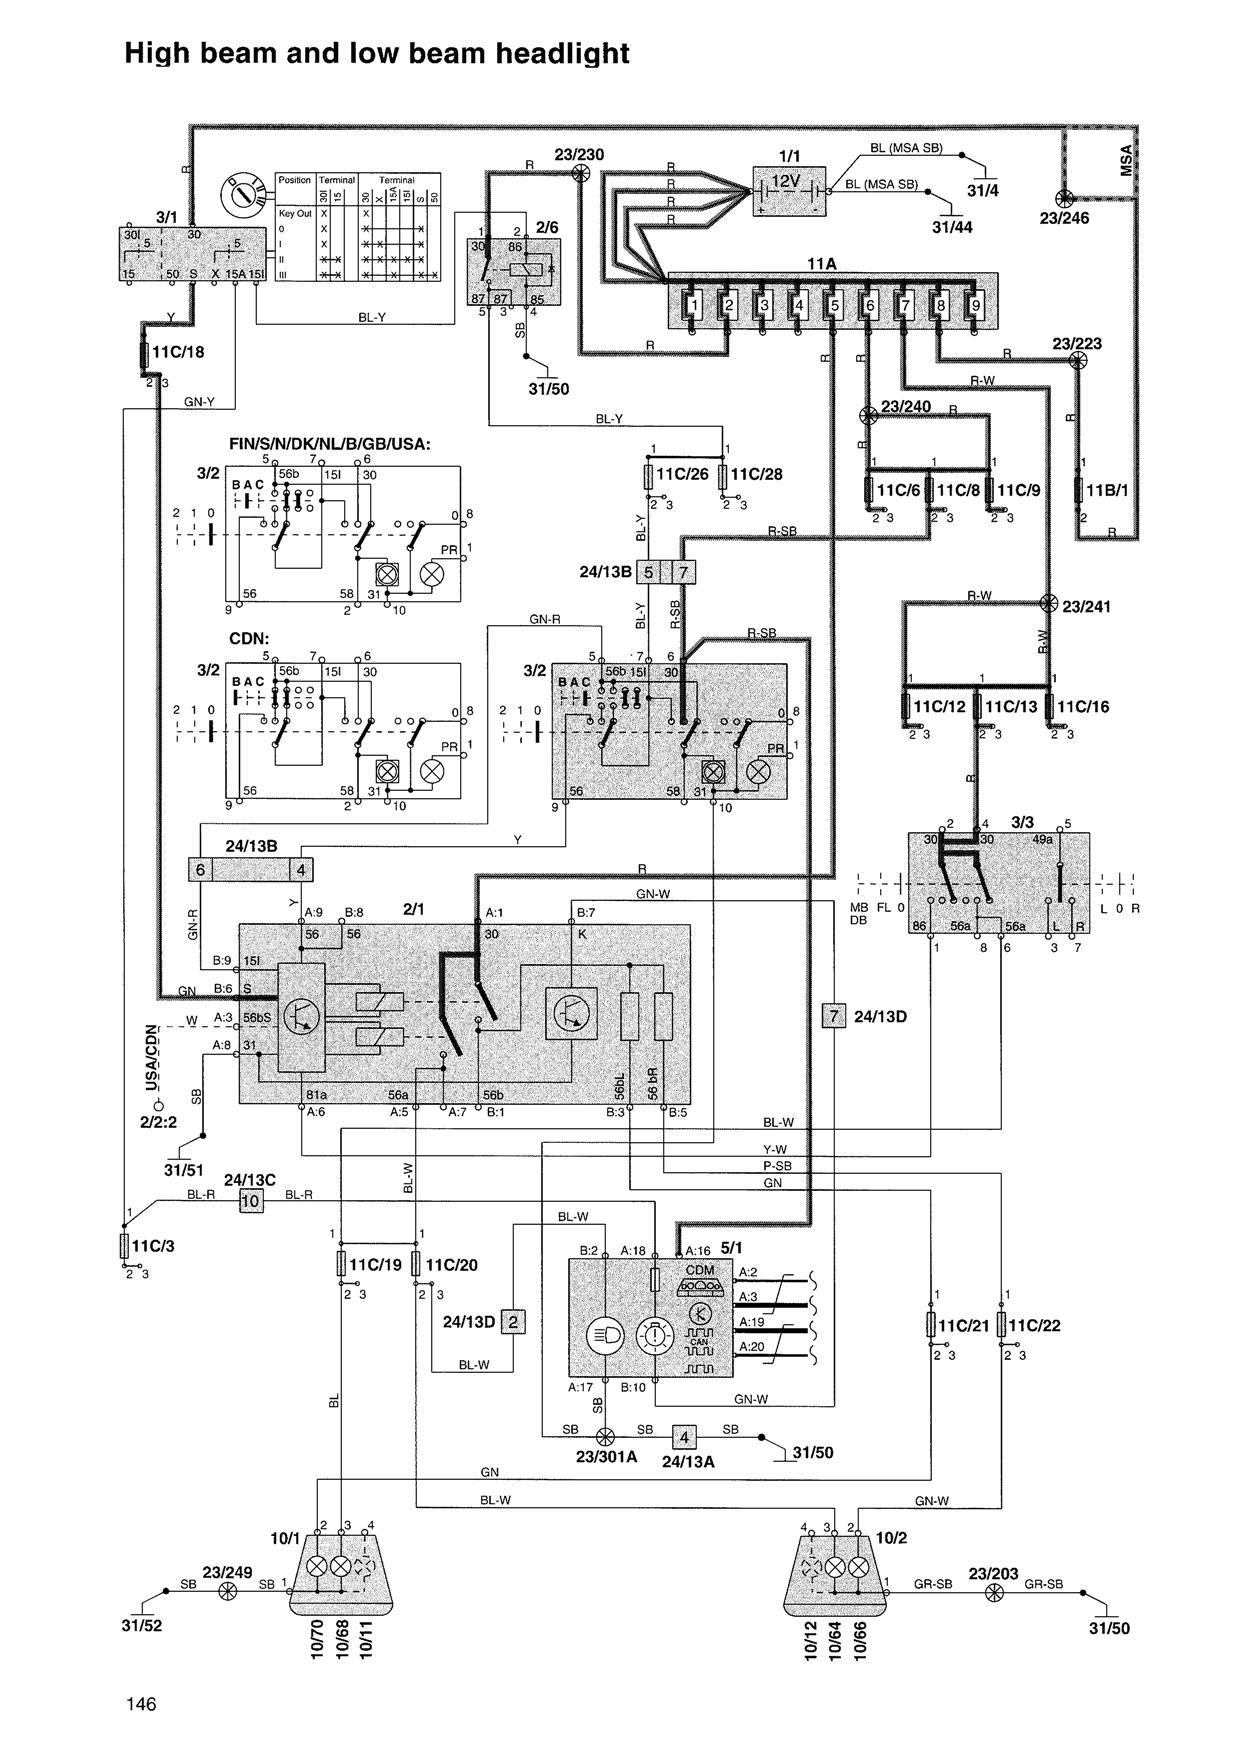 Volvo Xc90 Fuse Box Diagram Xc Fuel Pump Wiring Additionally 2004 Cem Also S40 Lb Diagrams Etm